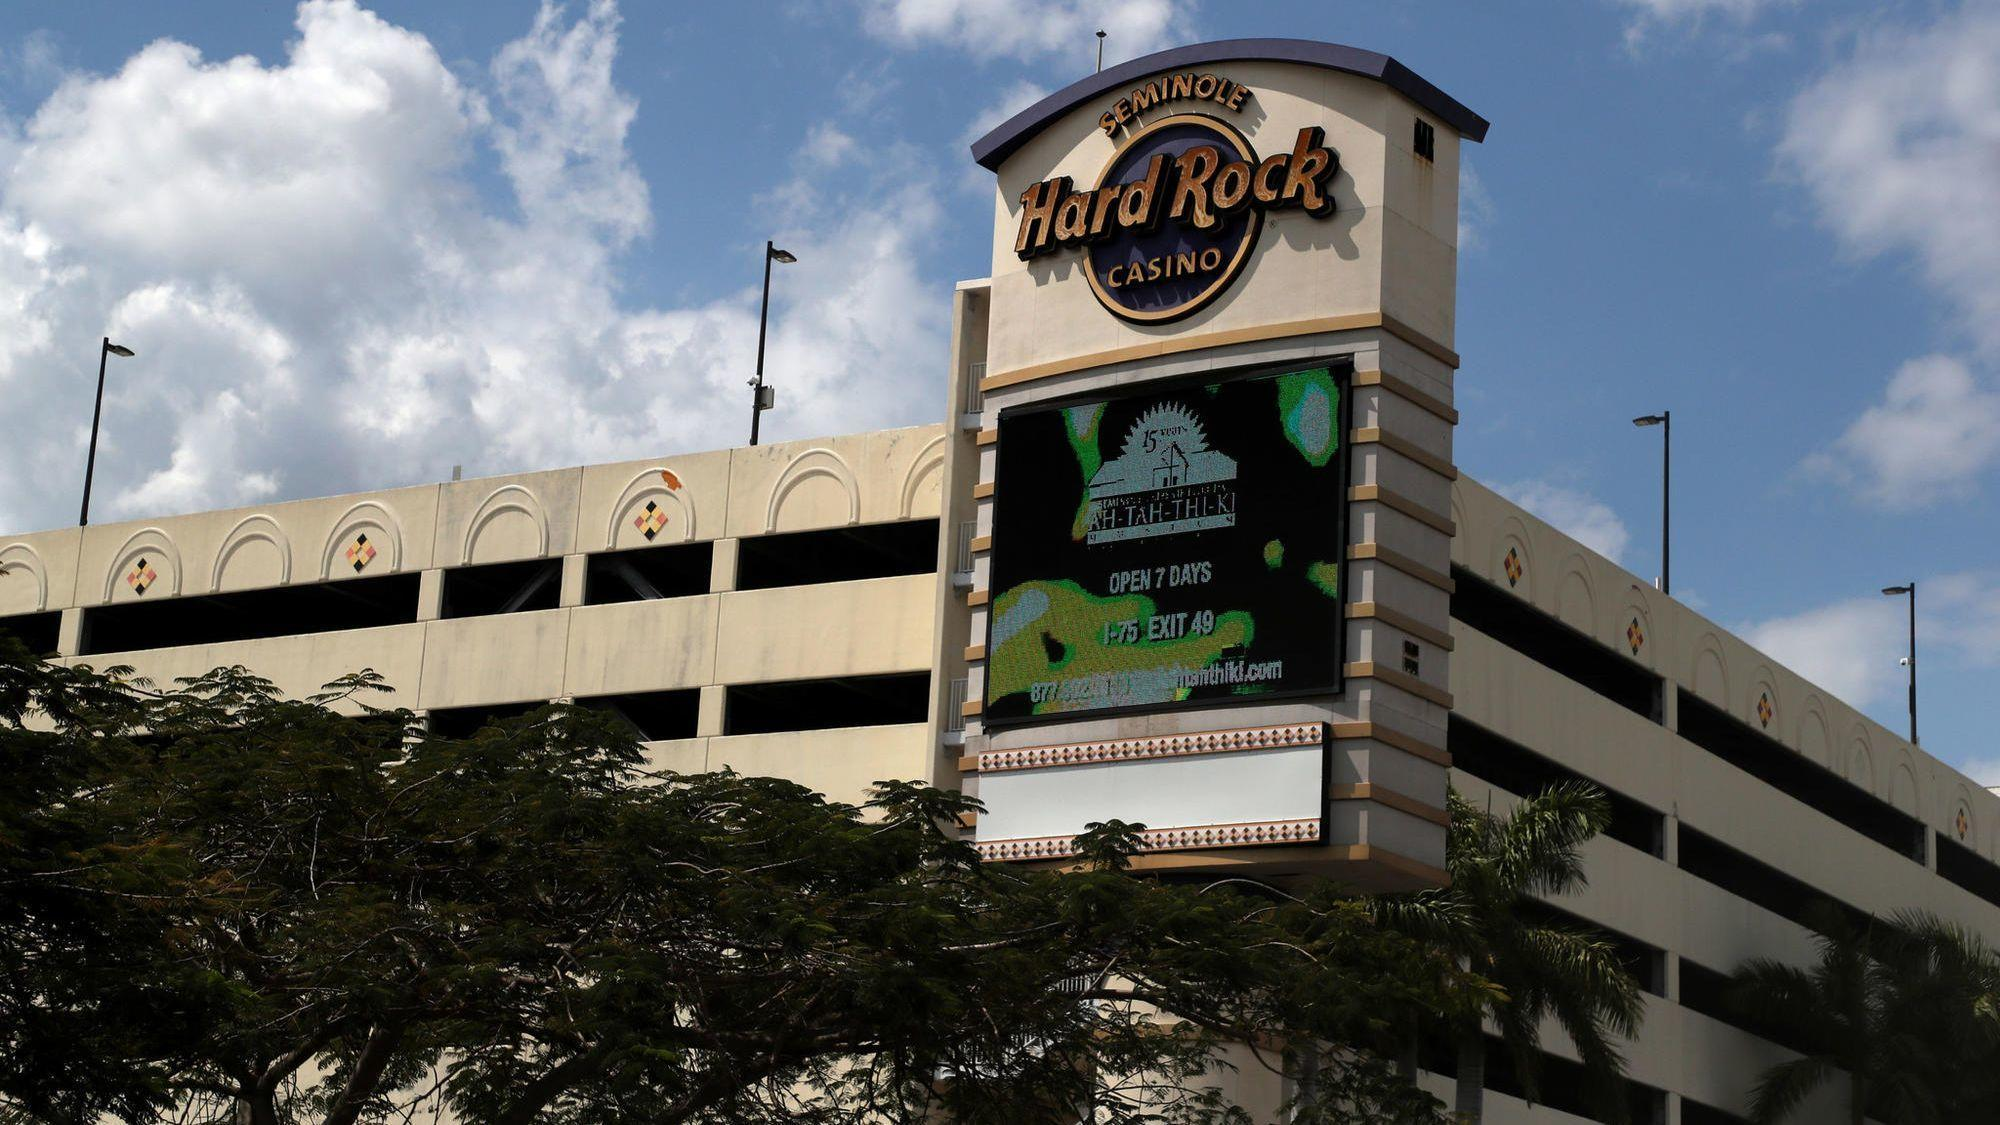 Man and his daughter found dead outside Hard Rock casino in apparent murder-suicide - Sun Sentinel